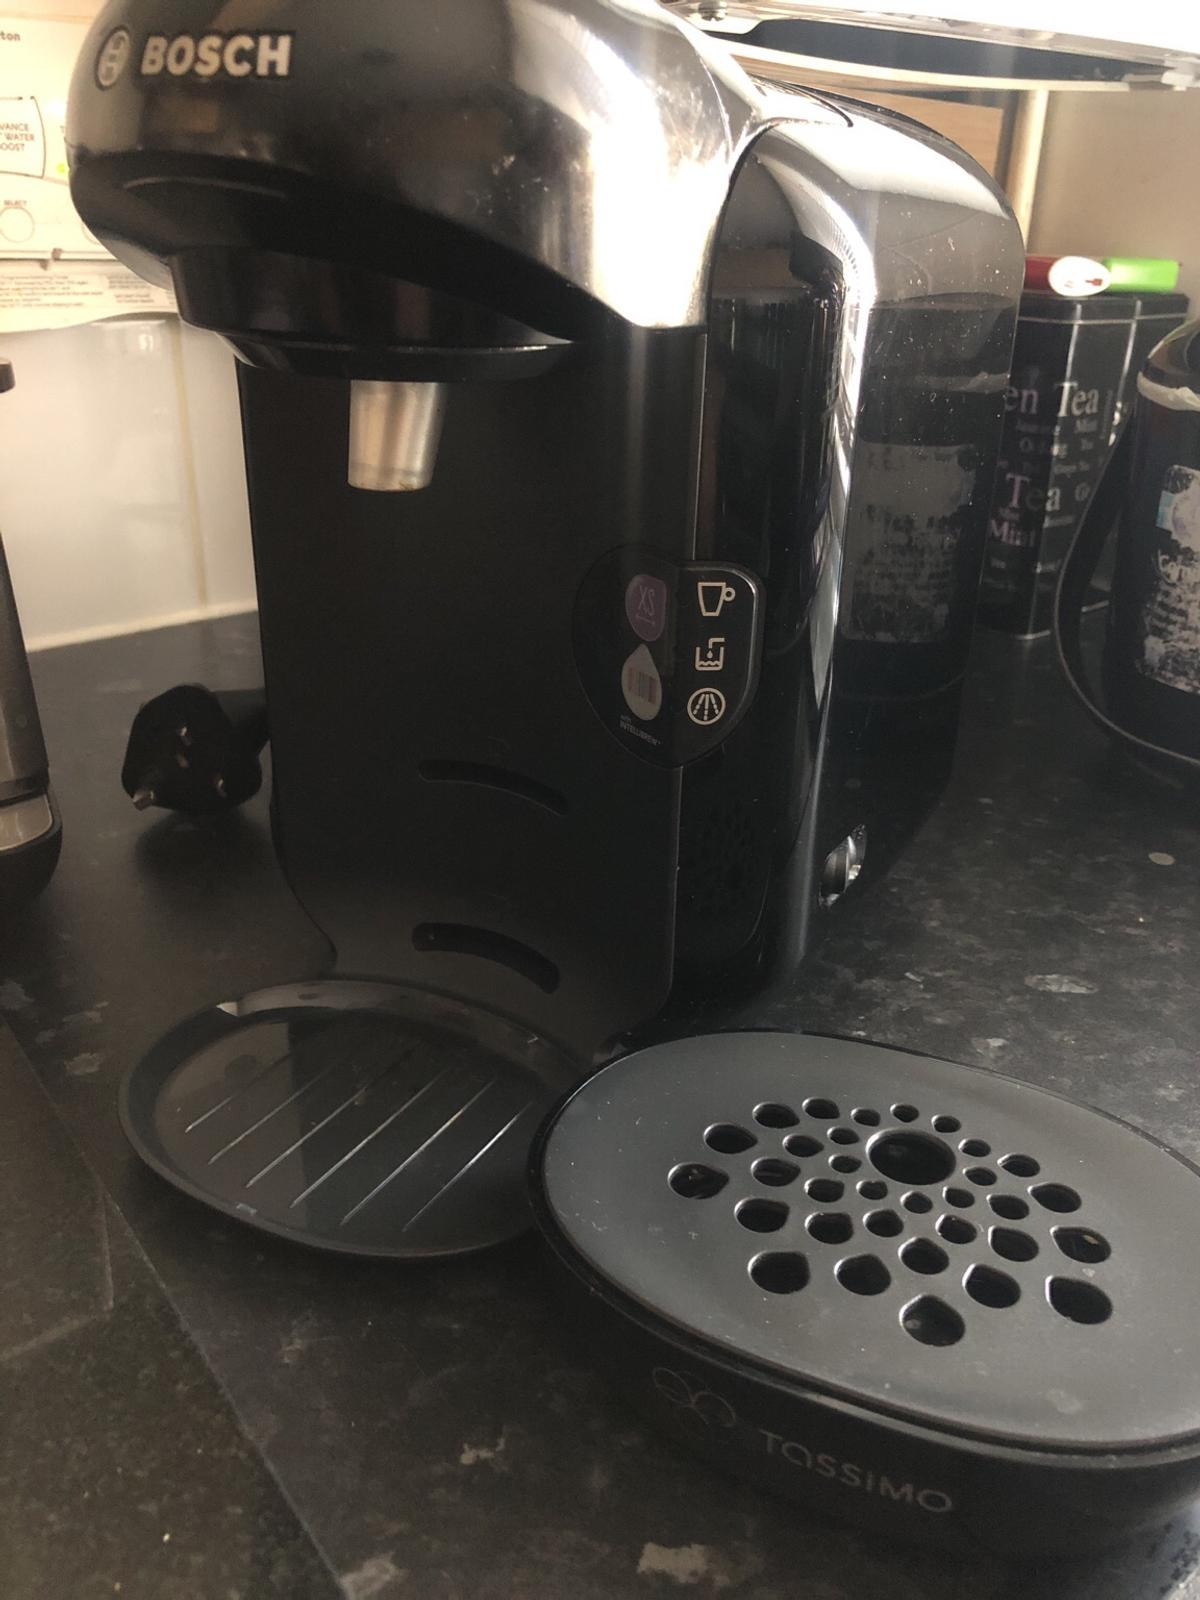 Bosch Tassimo Coffee Machine In Se16 London For 1500 For